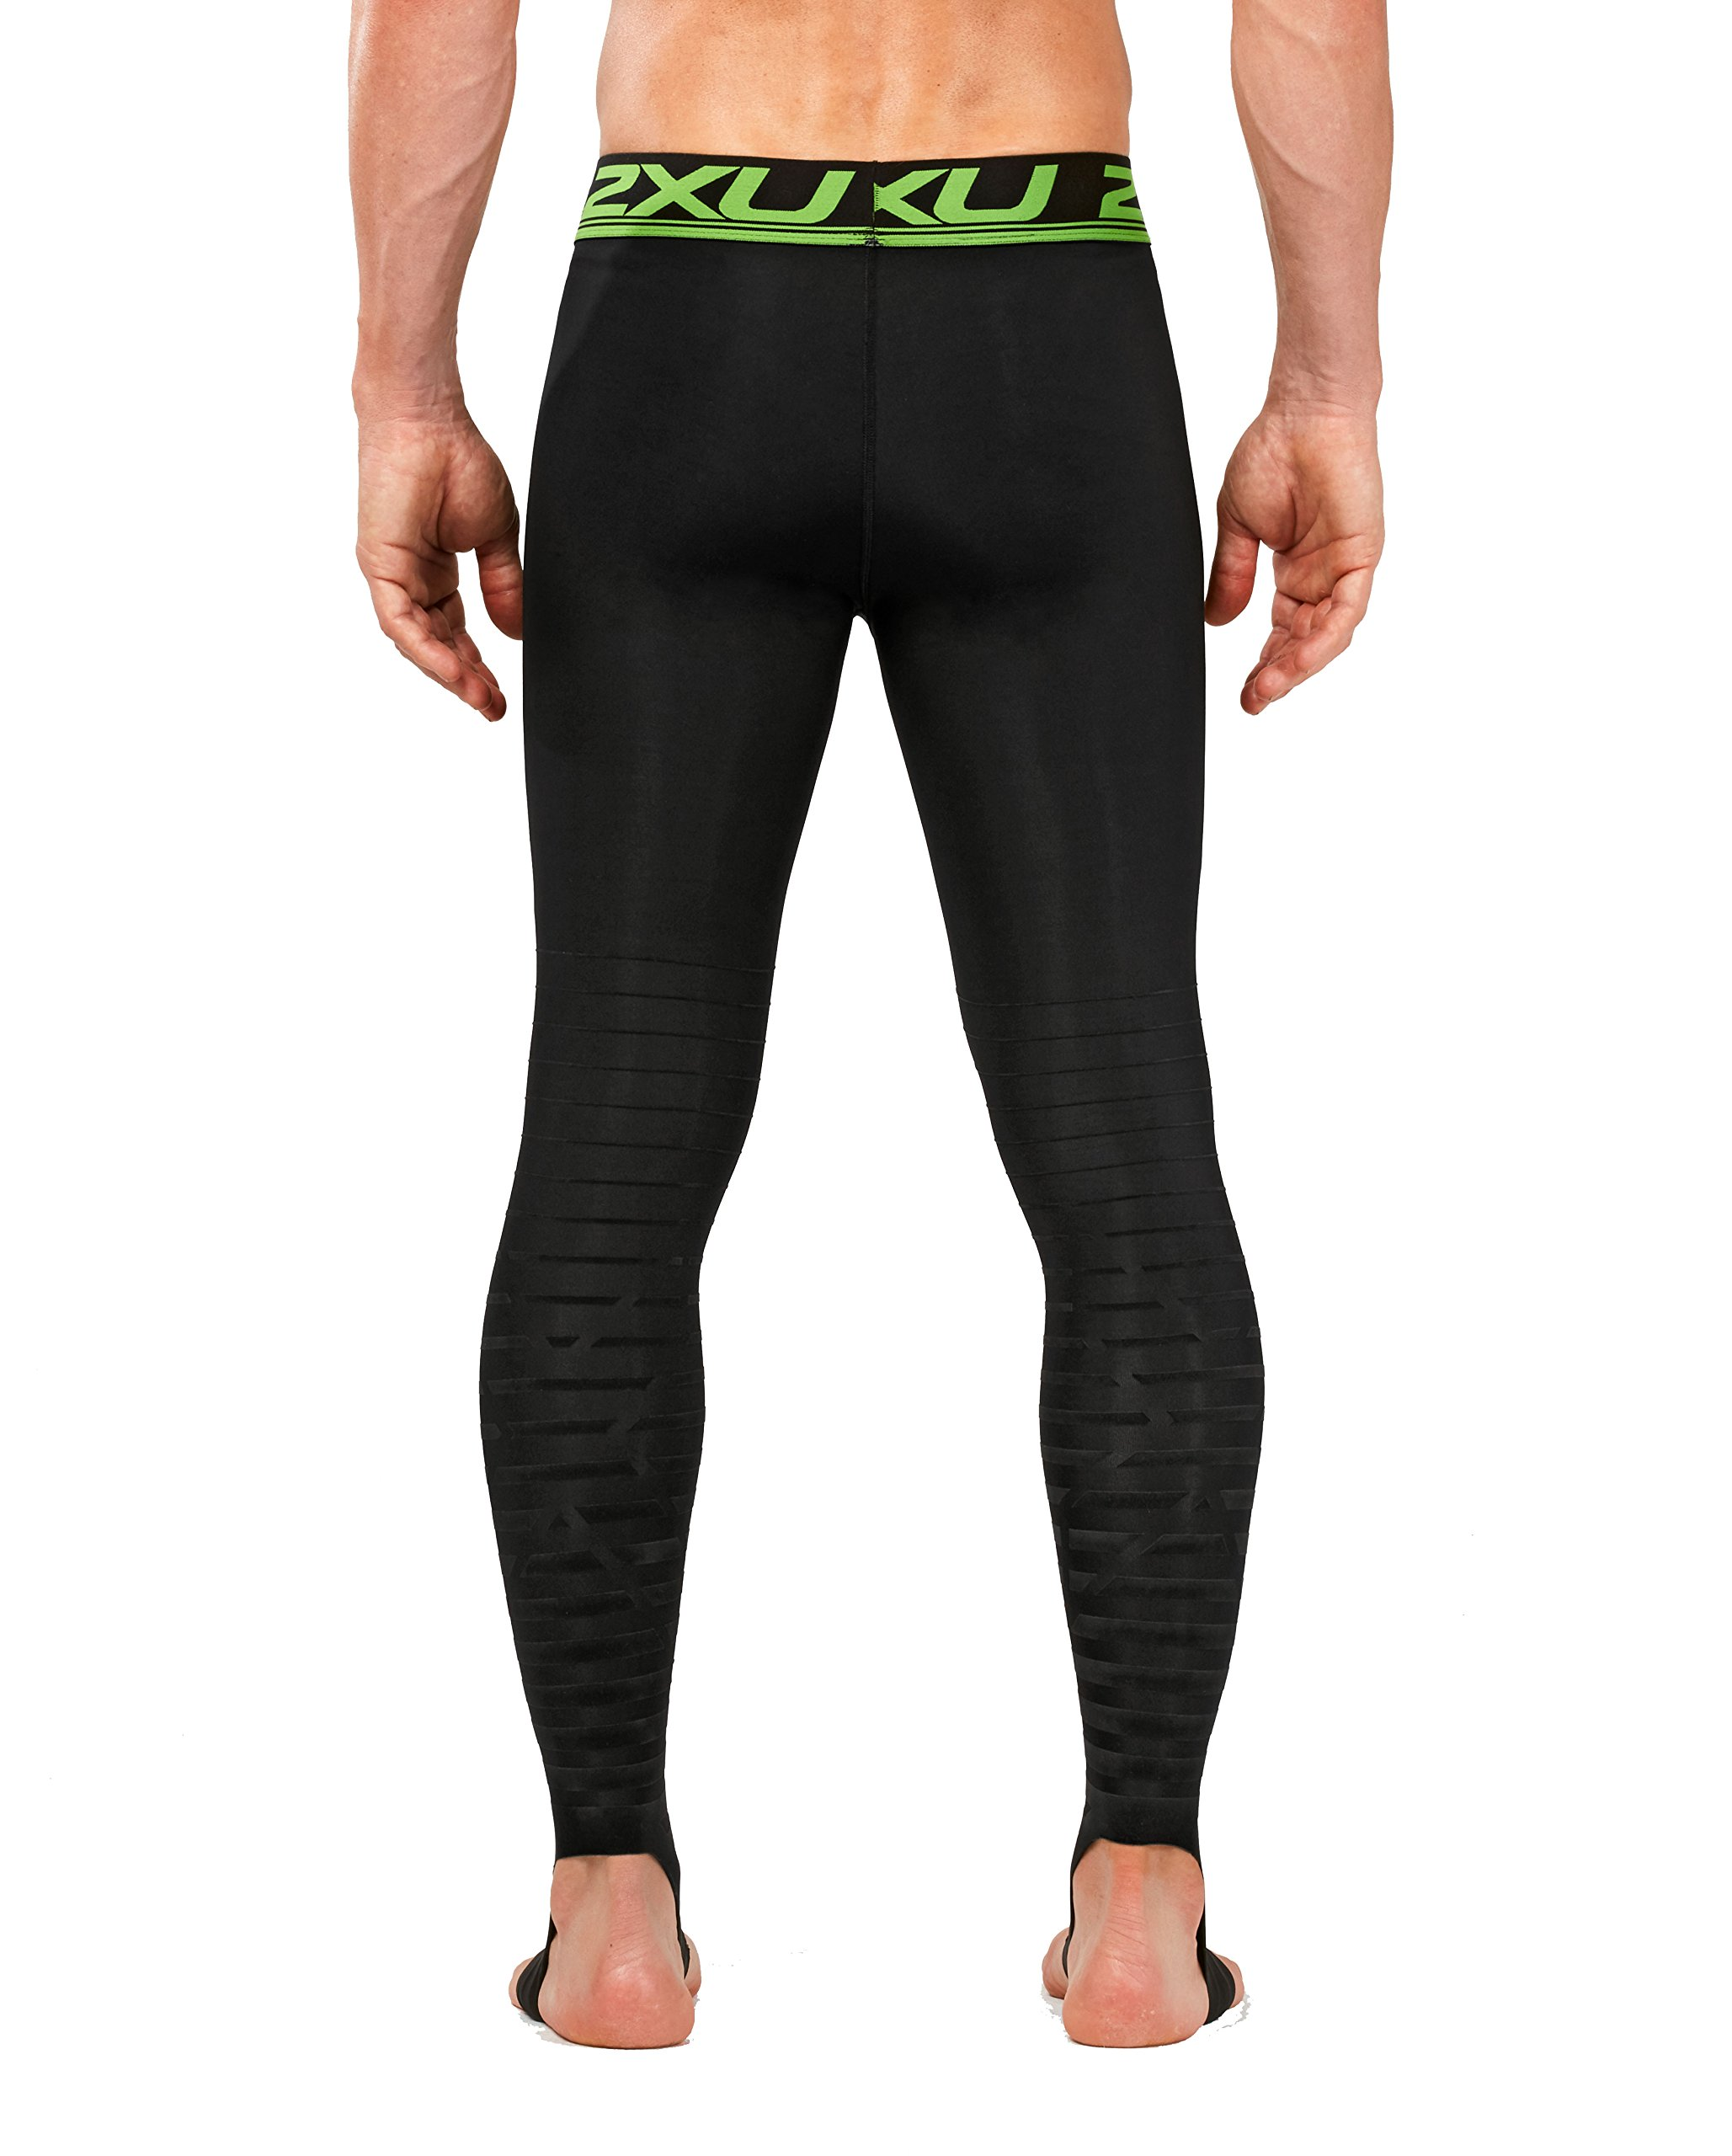 2XU Men's Elite Power Recovery Compression Tights, Black/Nero, Small/Tall by 2XU (Image #3)